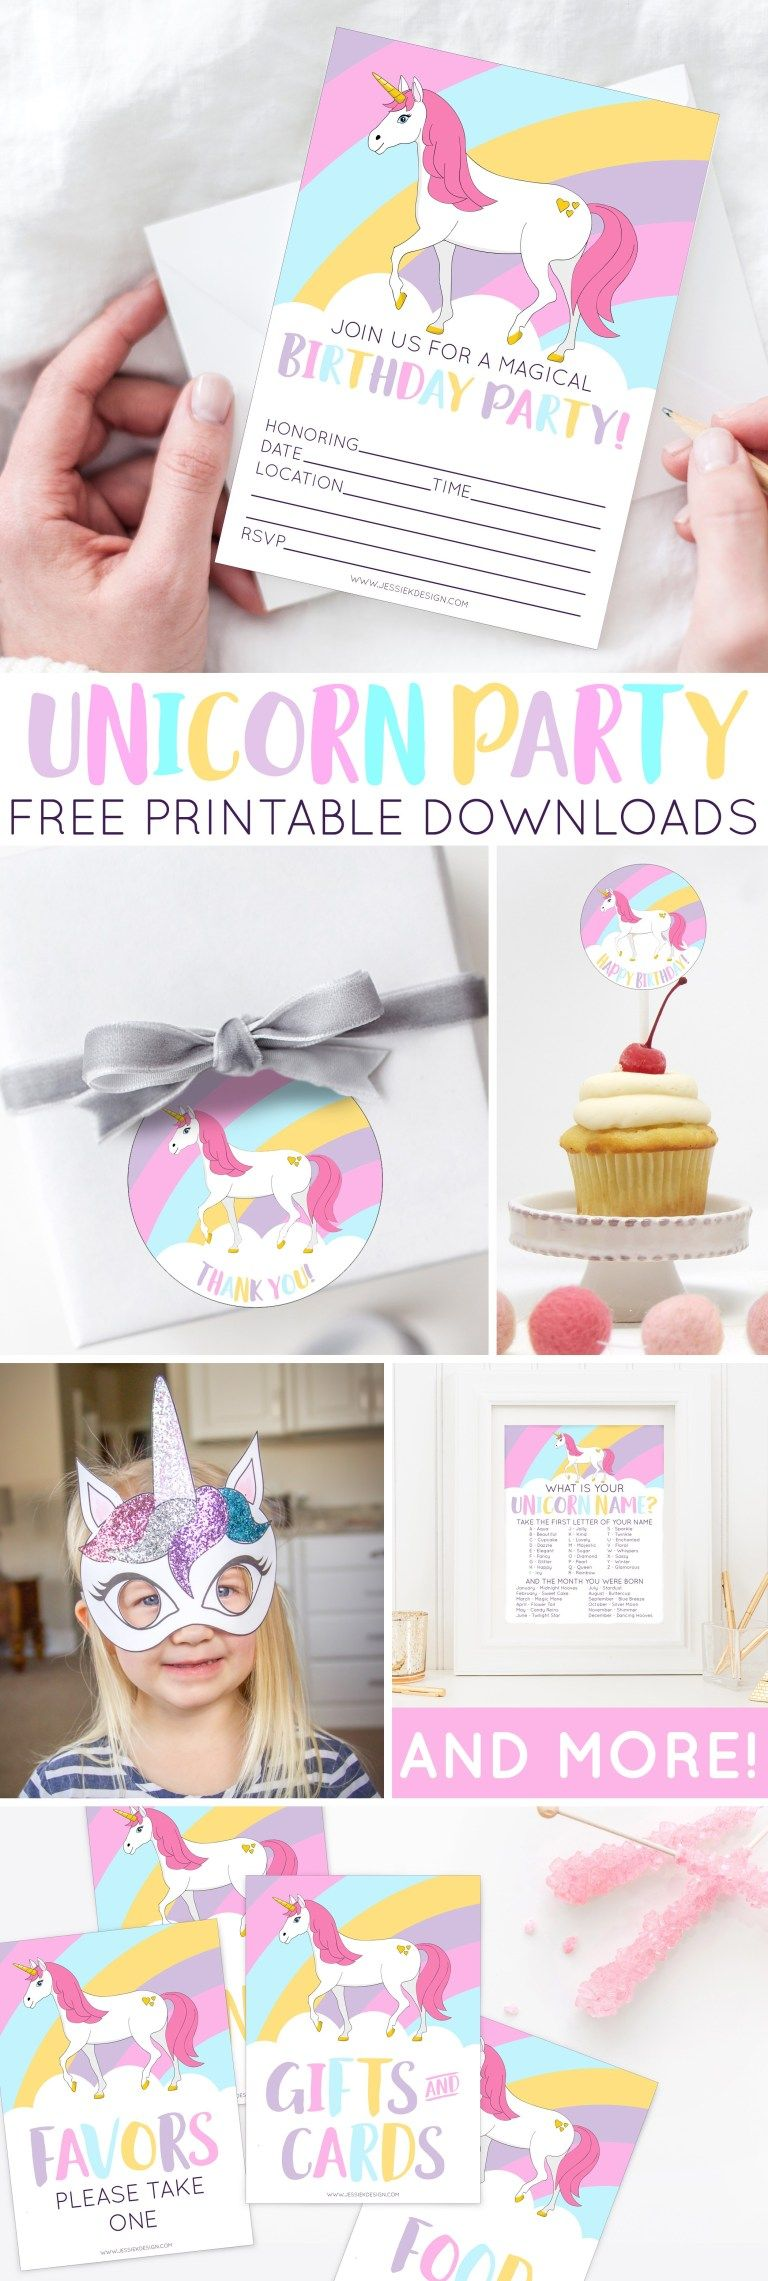 Unicorn Birthday Party Free Printables - Birthday party invitations diy, Diy unicorn birthday party, Unicorn birthday party decorations, Unicorn themed birthday party, Unicorn themed birthday, Unicorn birthday invitations - Your party will be nothing but magical with these FREE PRINTABLE downloads  Included are decorations, games, activities and an invitation  Download today!